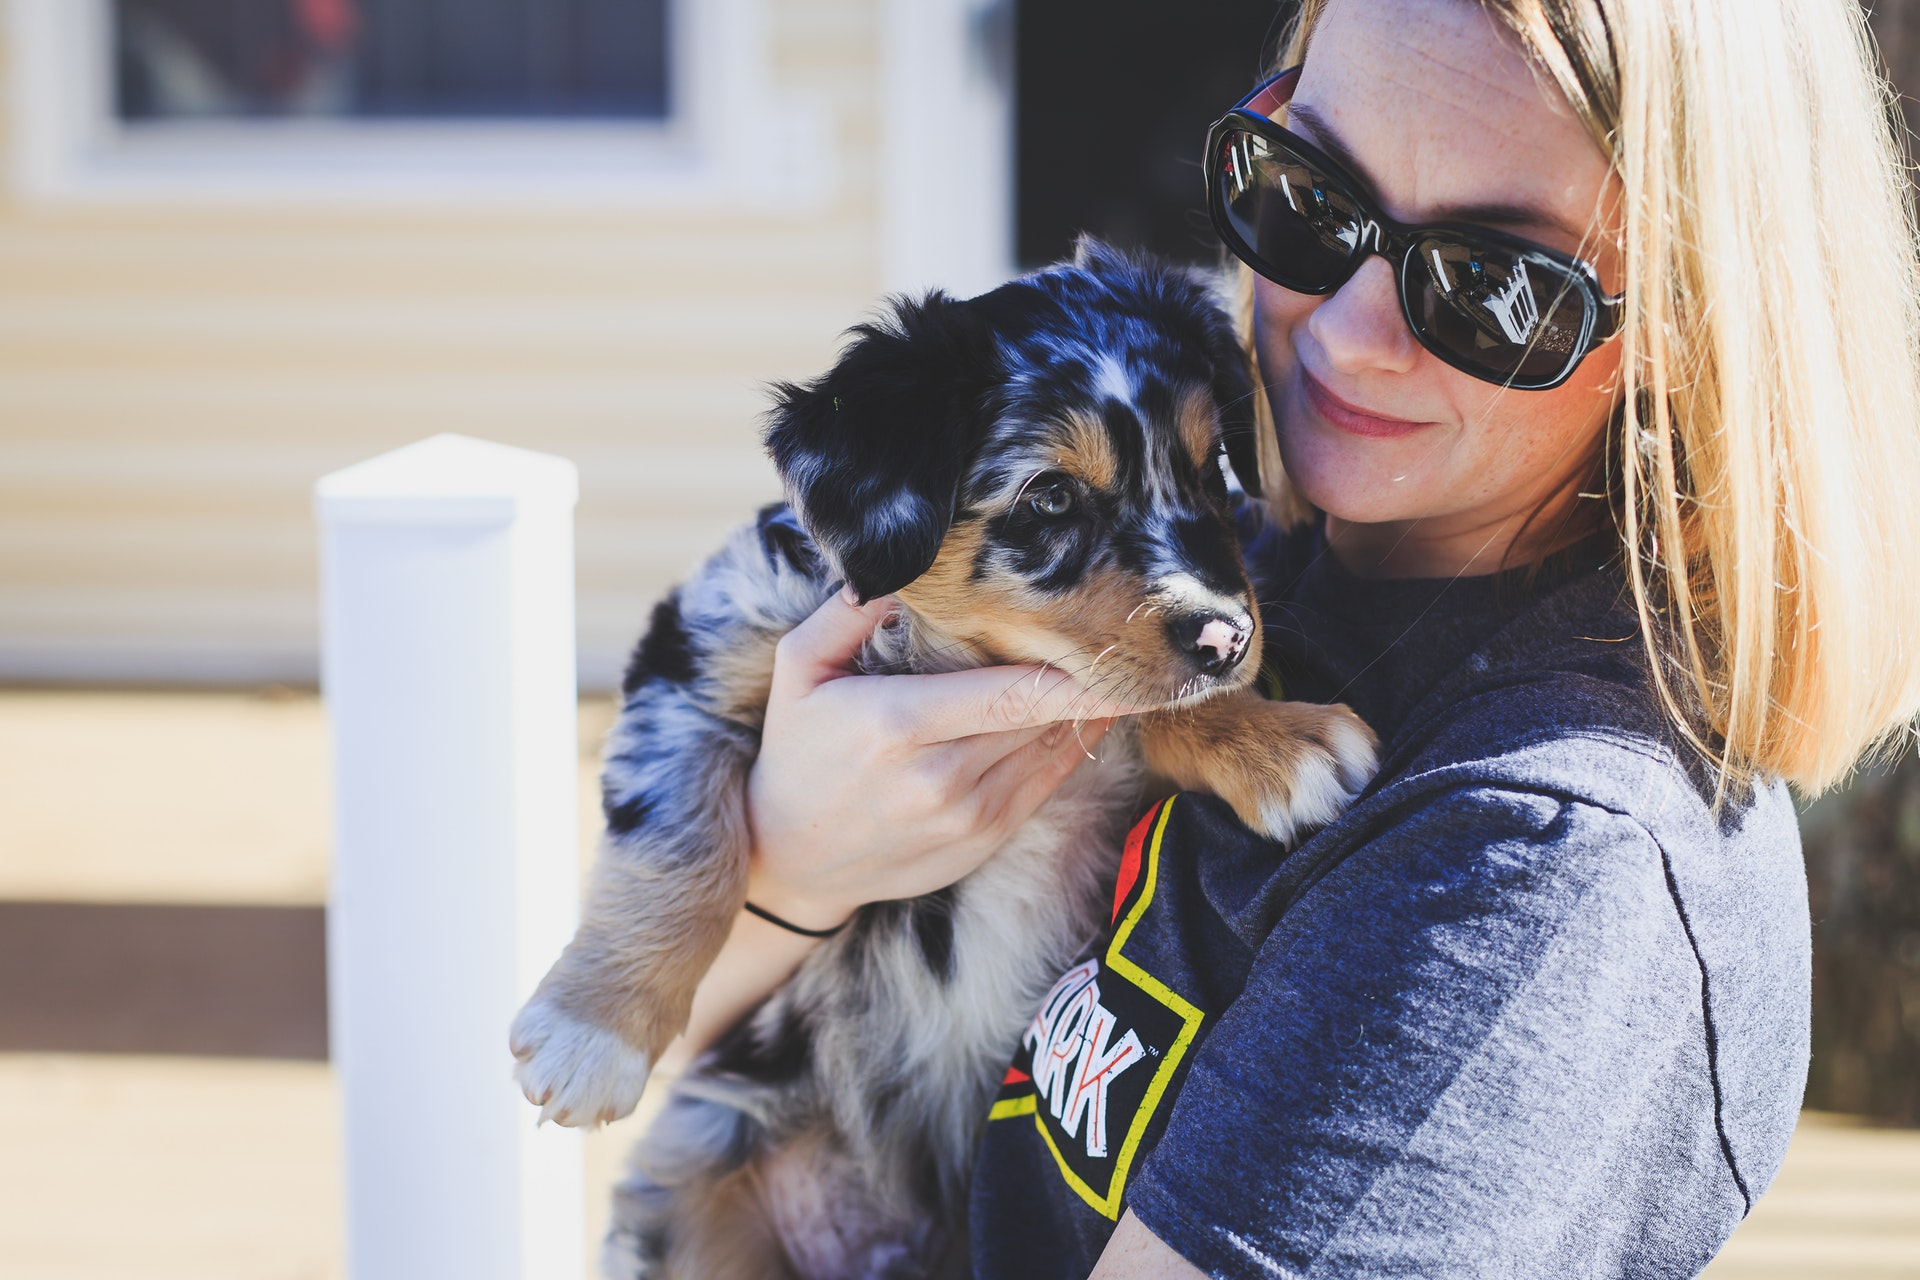 Woman holding a dog, showing how to bond with a new rescue dog